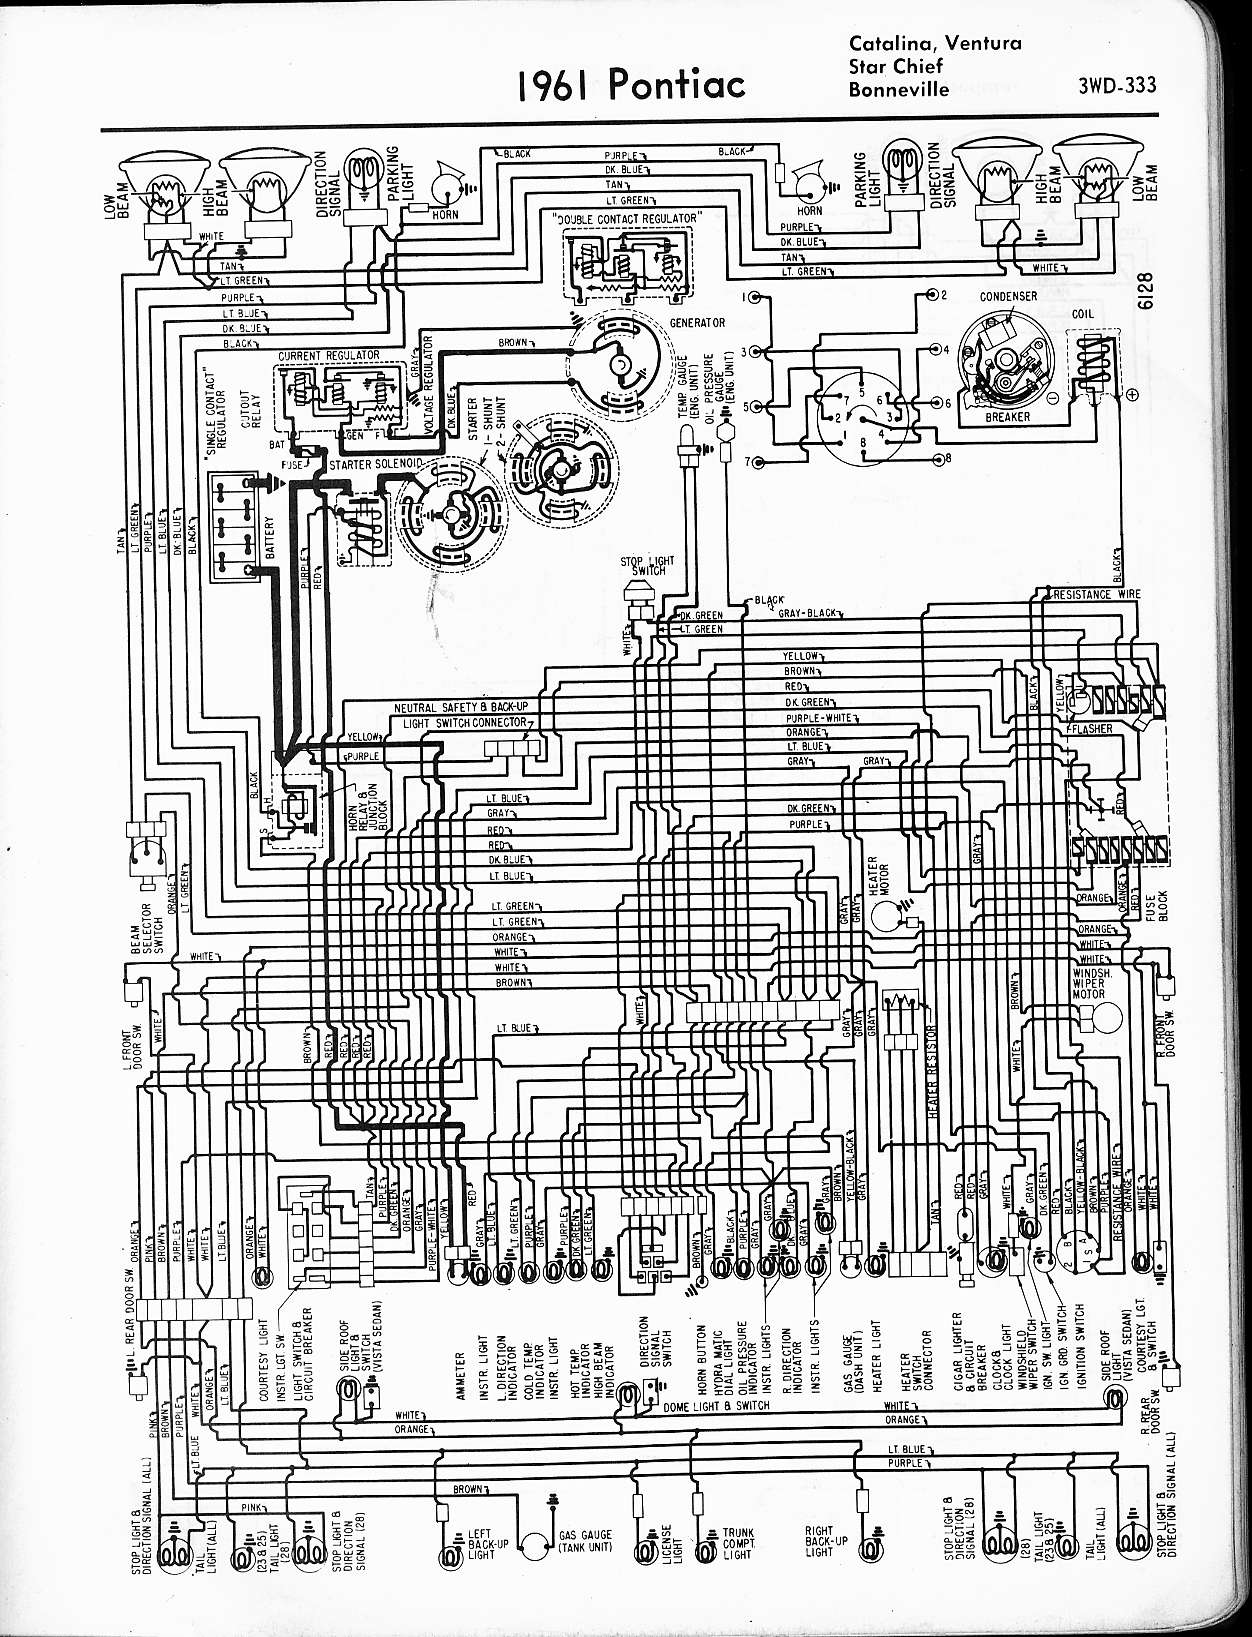 1970 Pontiac Gto Wiring Harness Diagram Content Resource Of 70 Mustang Schematic 65 Diagrams Schematics U2022 Rh Parntesis Co